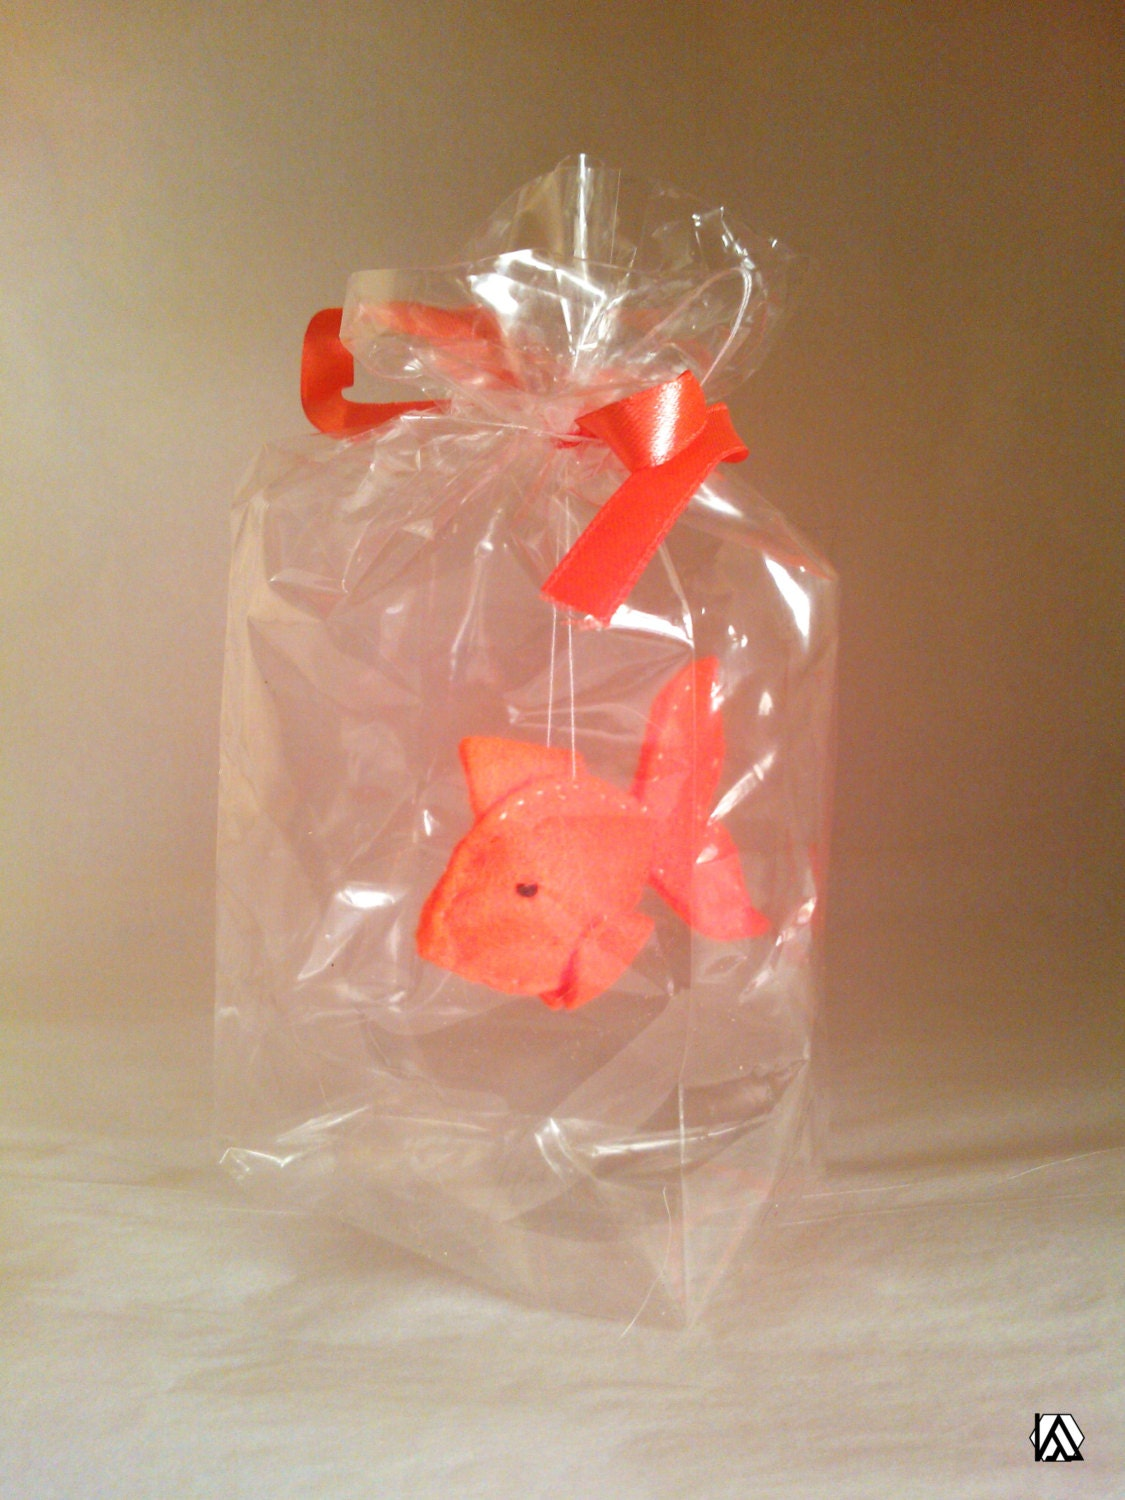 Orange spiky fish the ultimate pet fish in a bag vegan for Fish in a bag